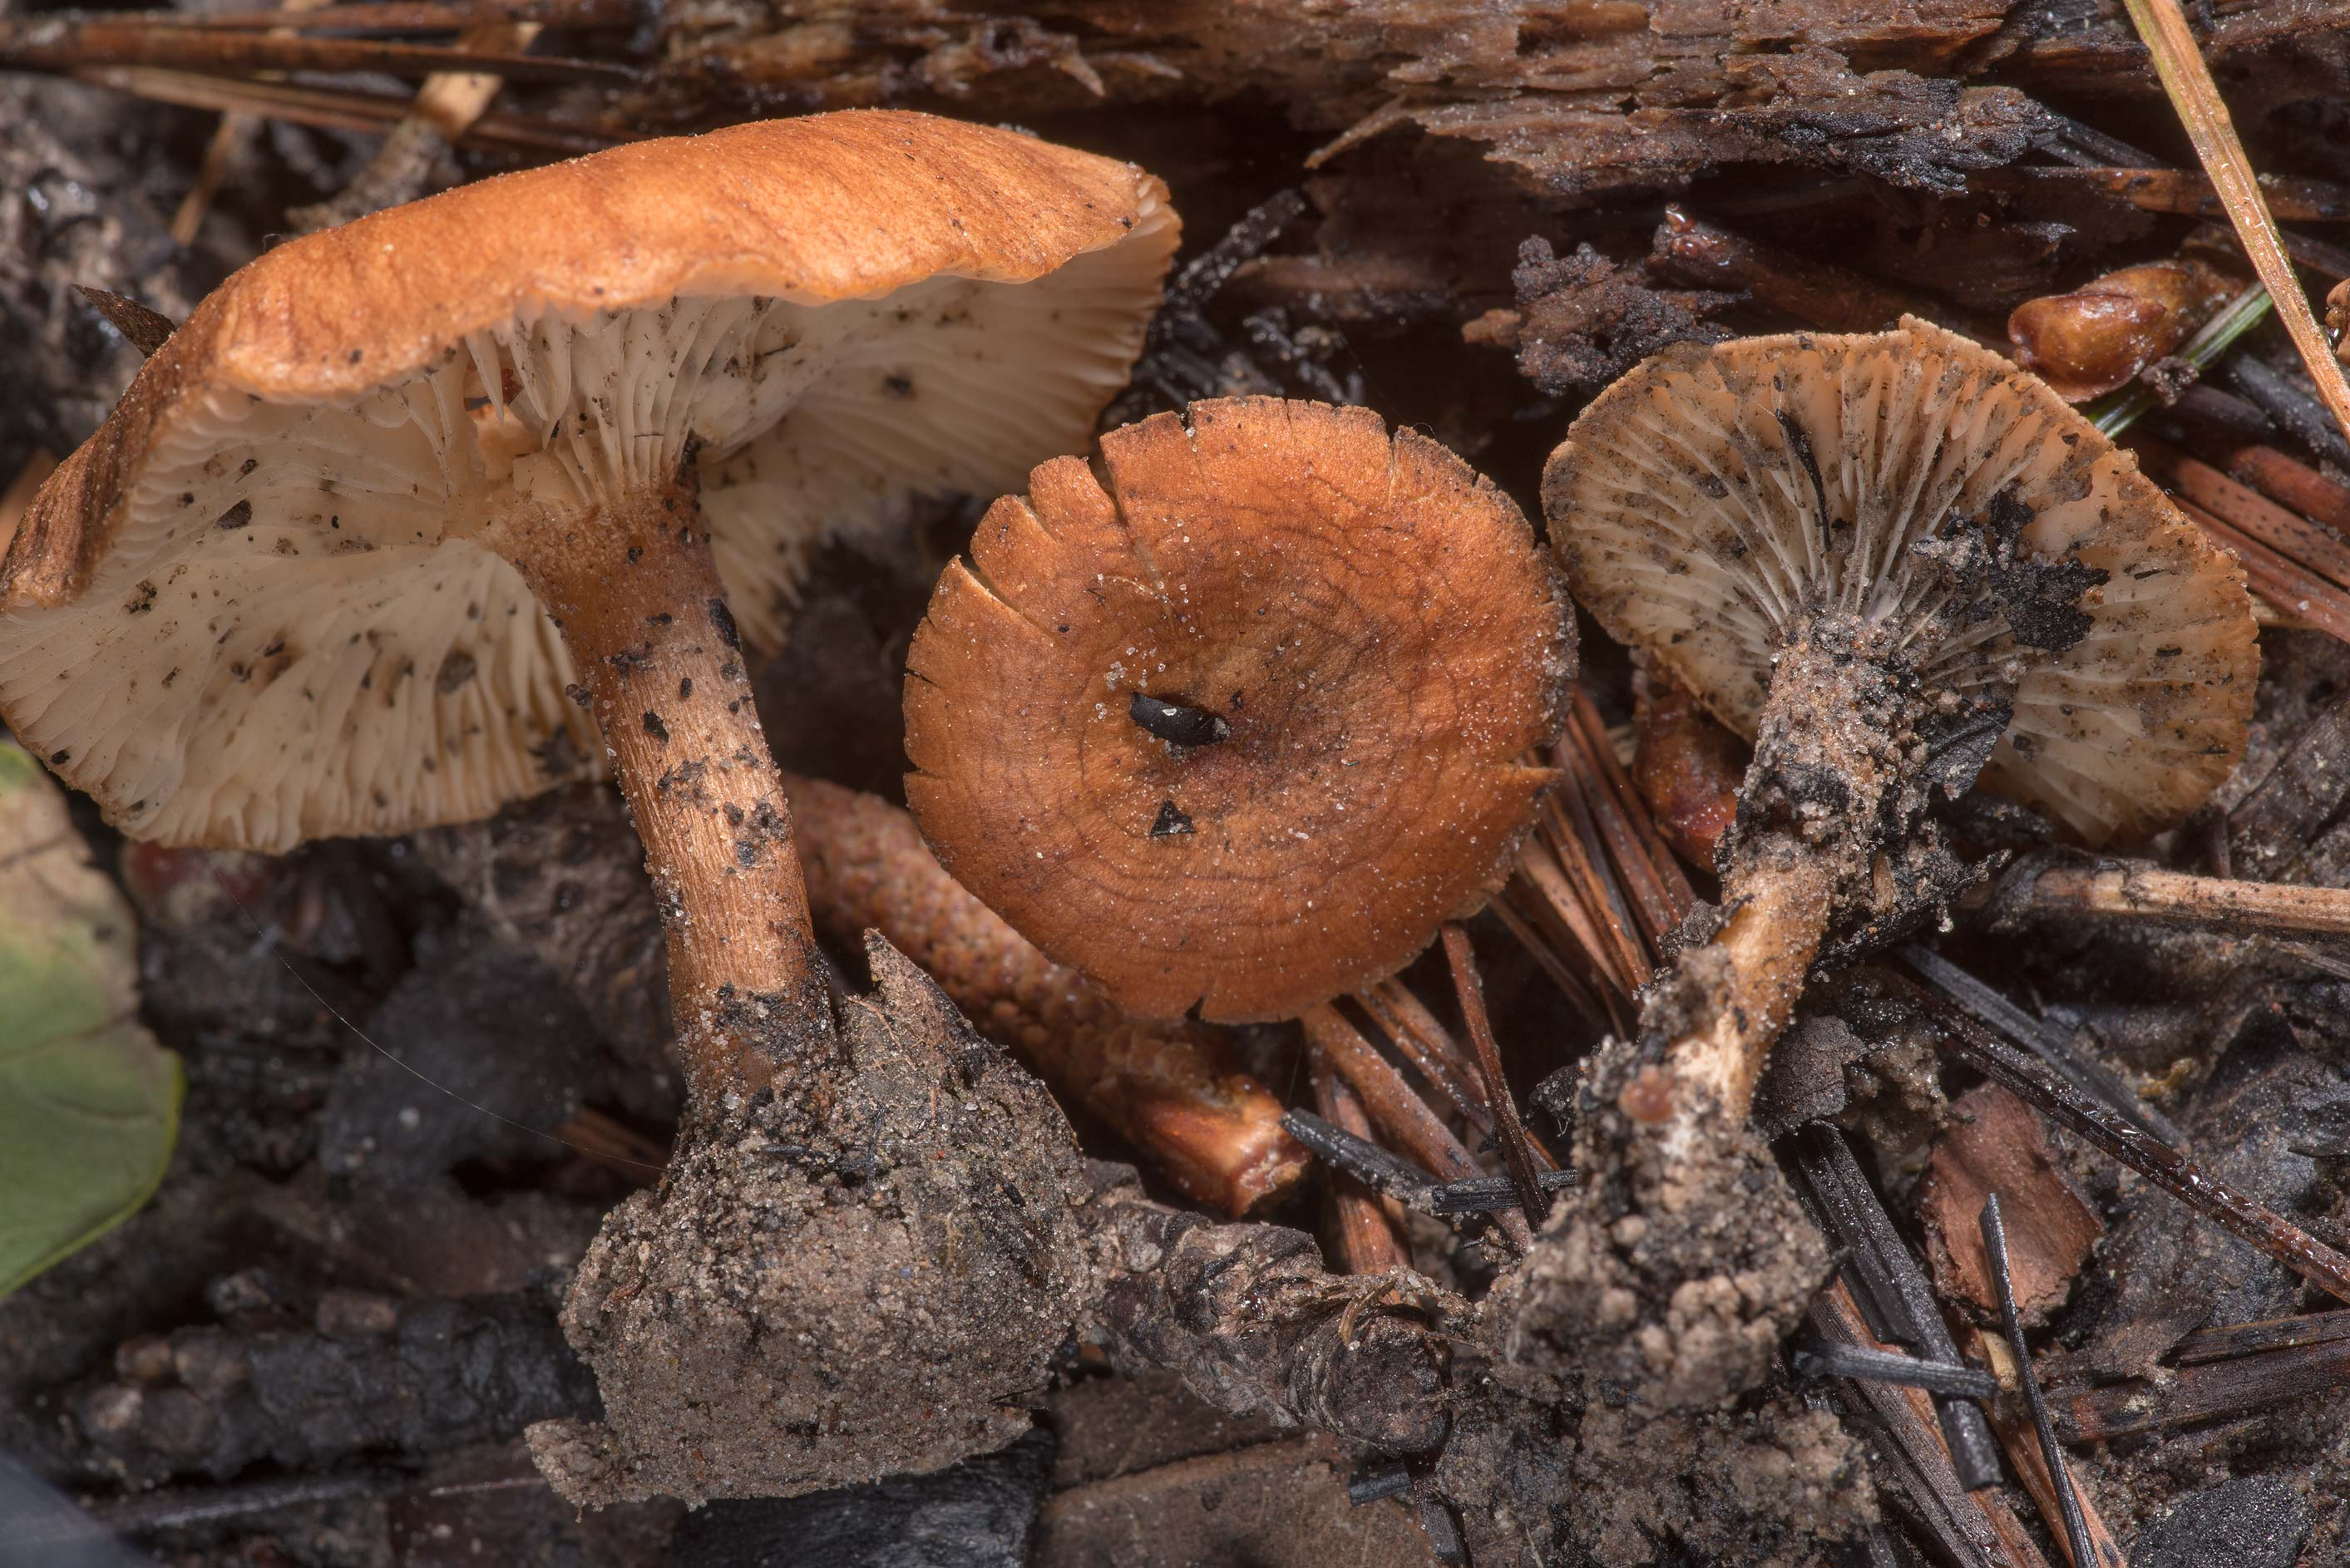 Brick-red Clitocybe mushrooms (Clitocybe sinopica...Forest west from Richards. Texas